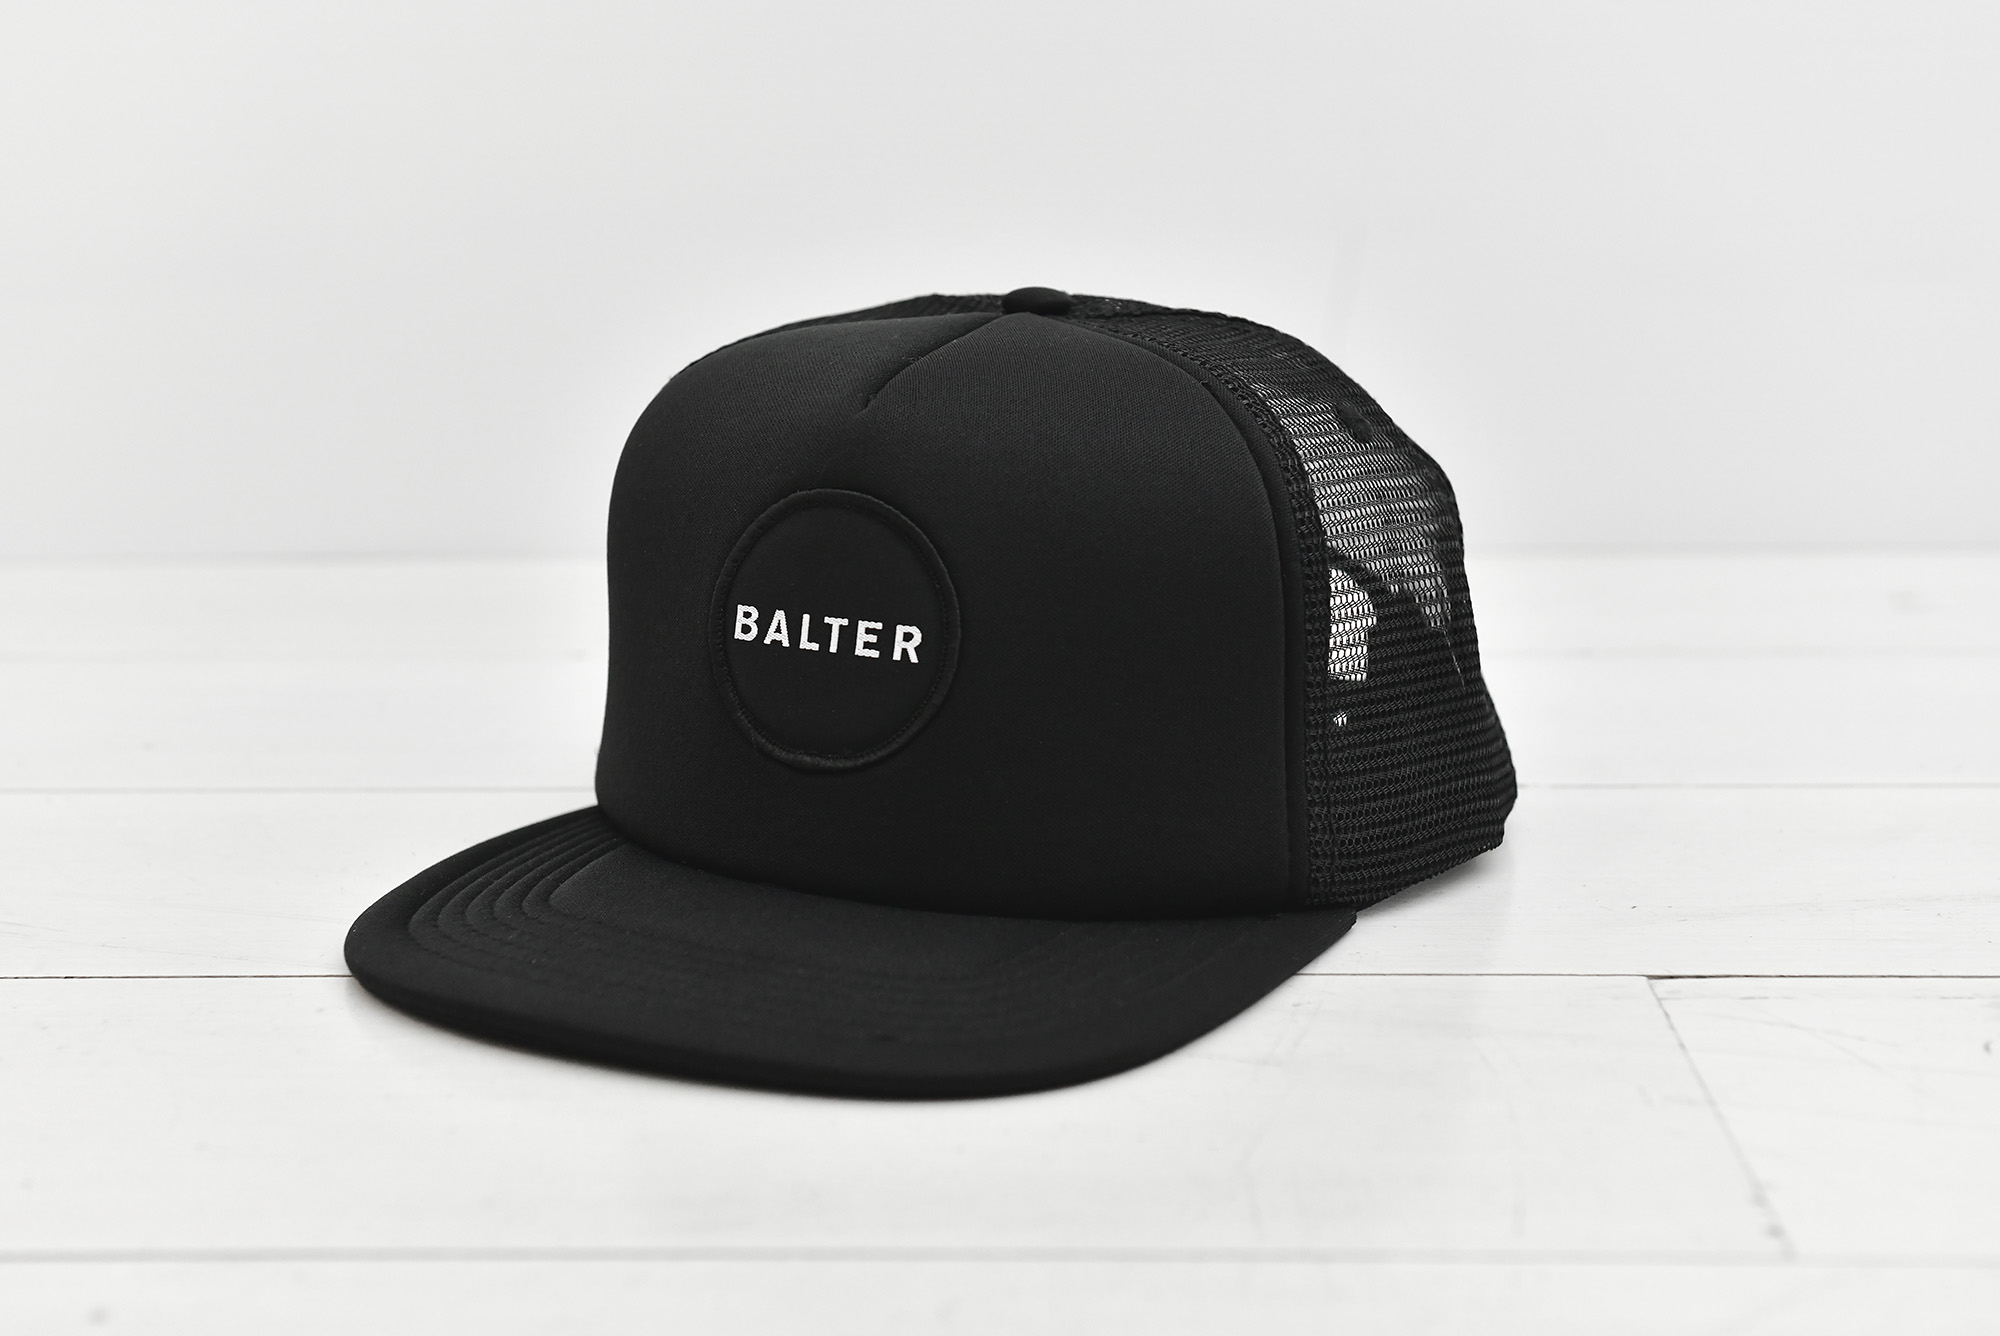 Balter All Black